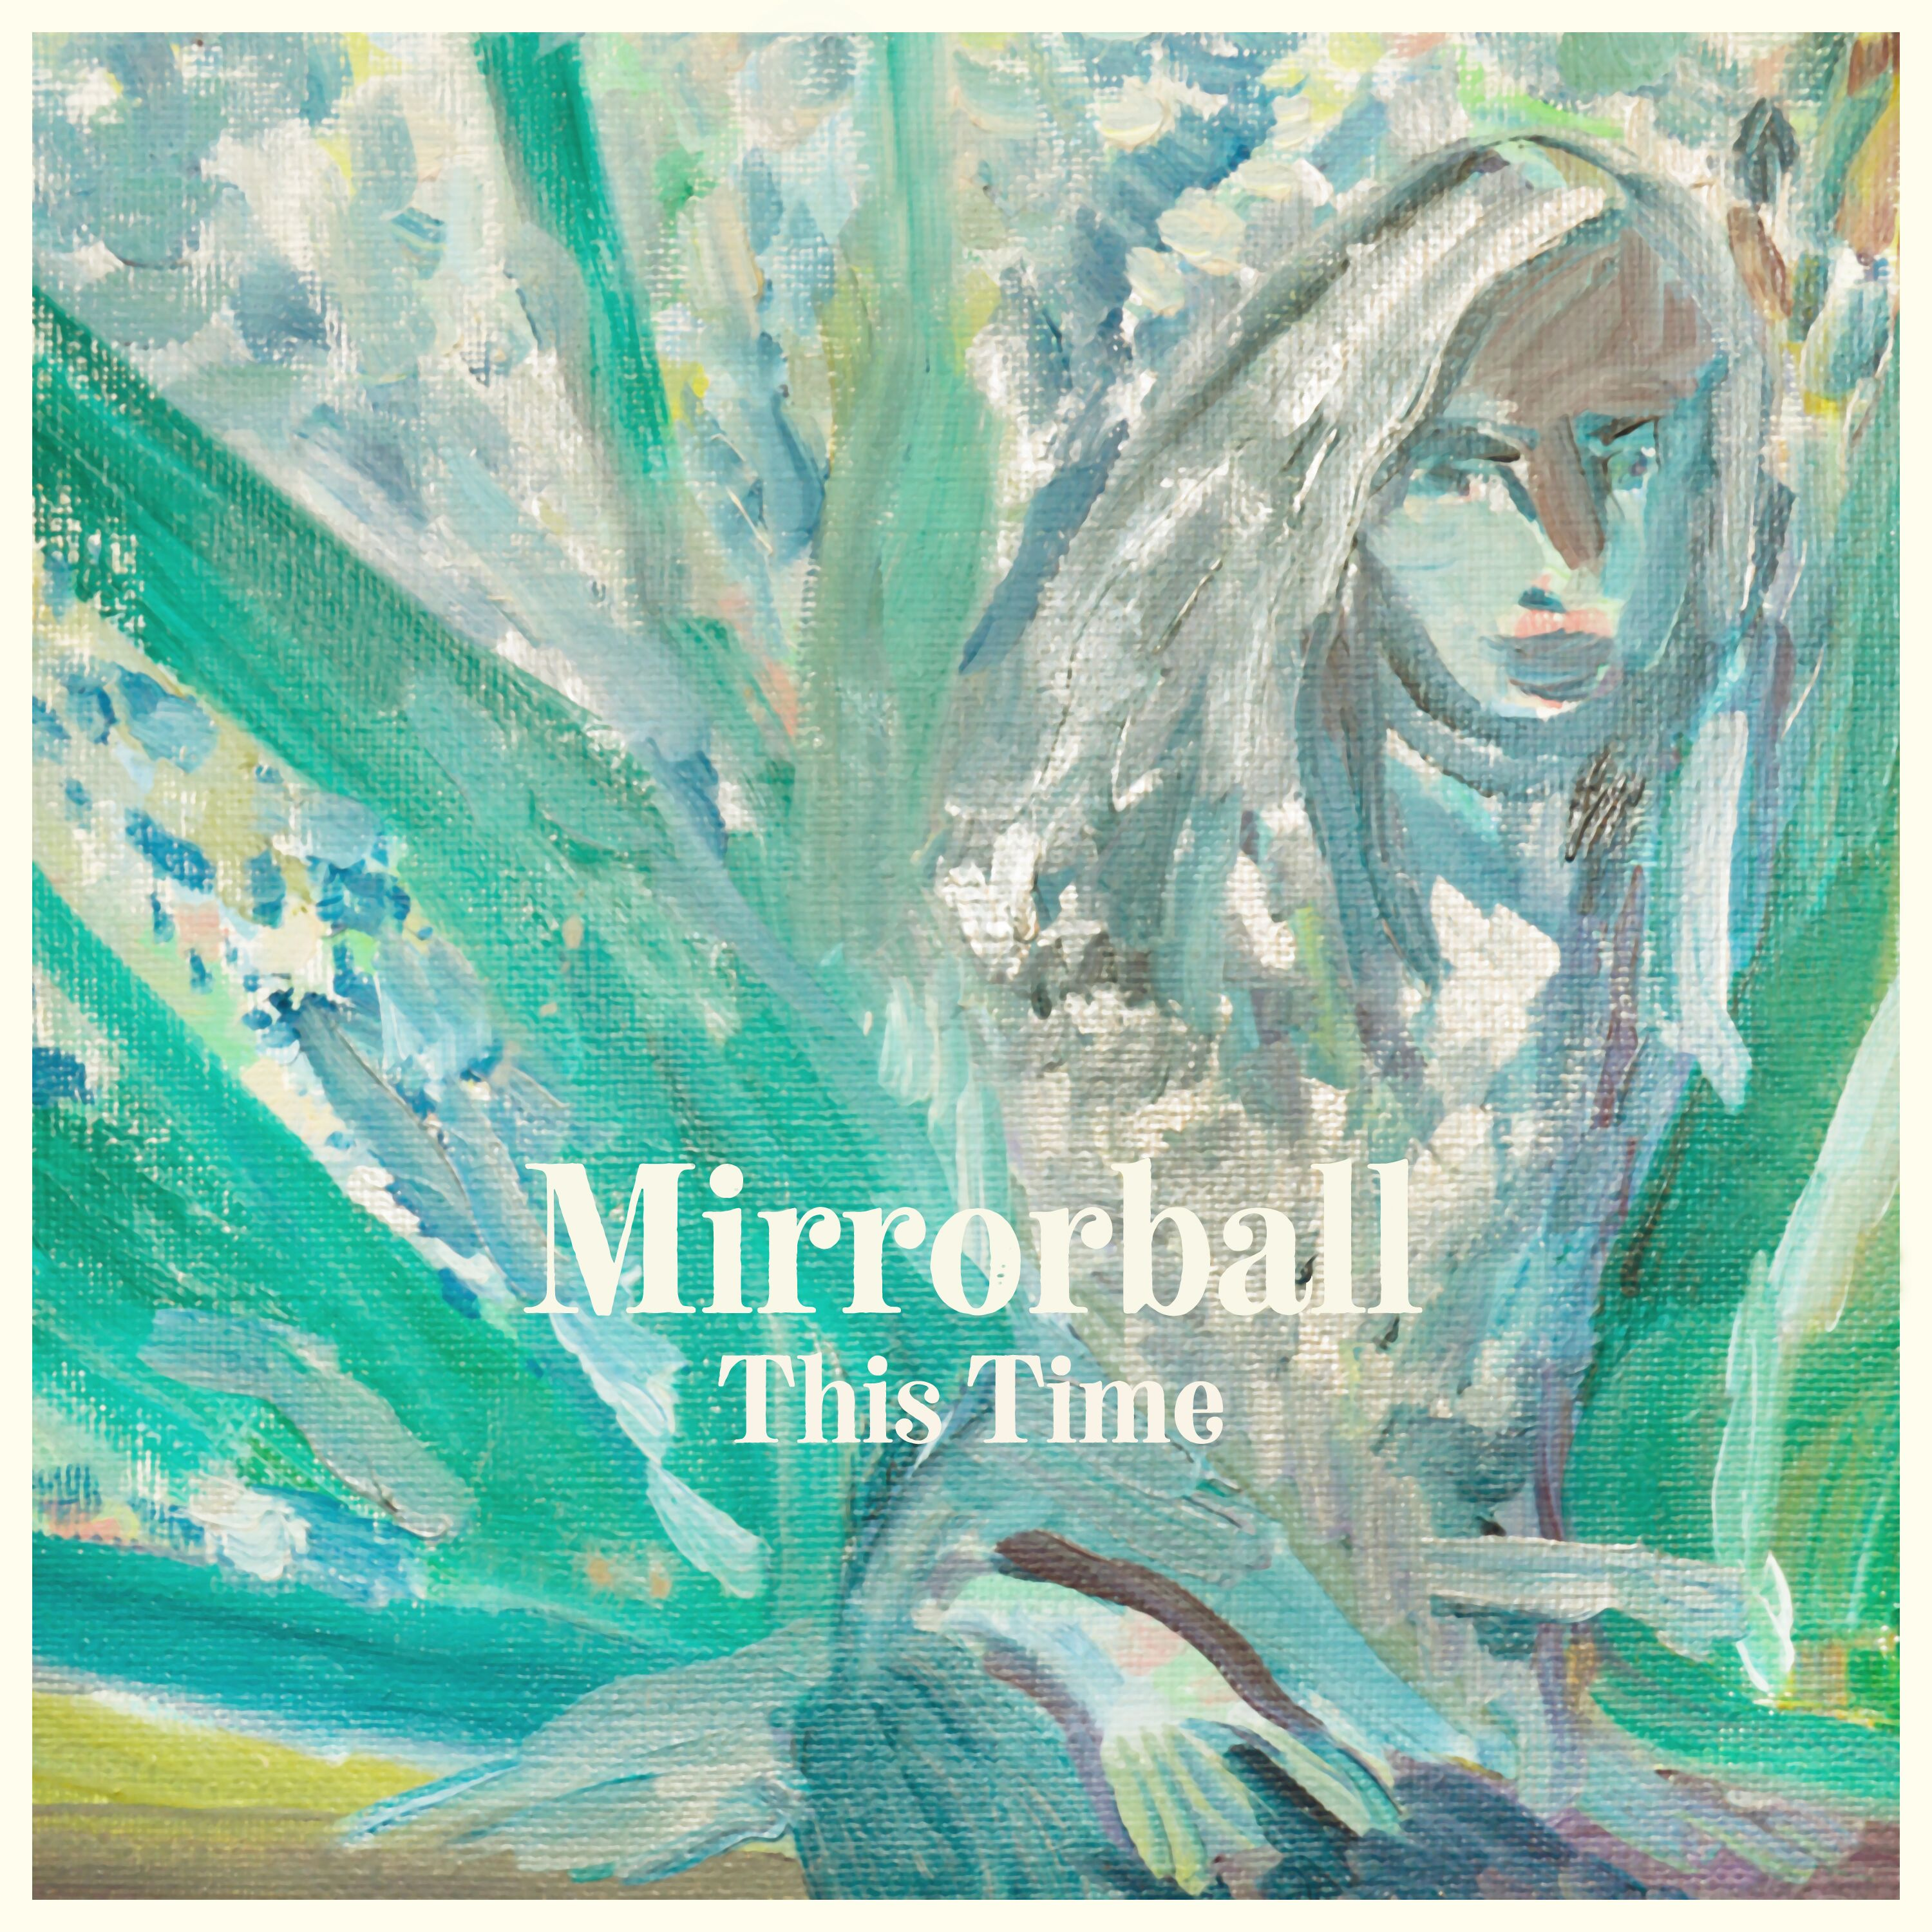 Mirrorball - This Time - Single